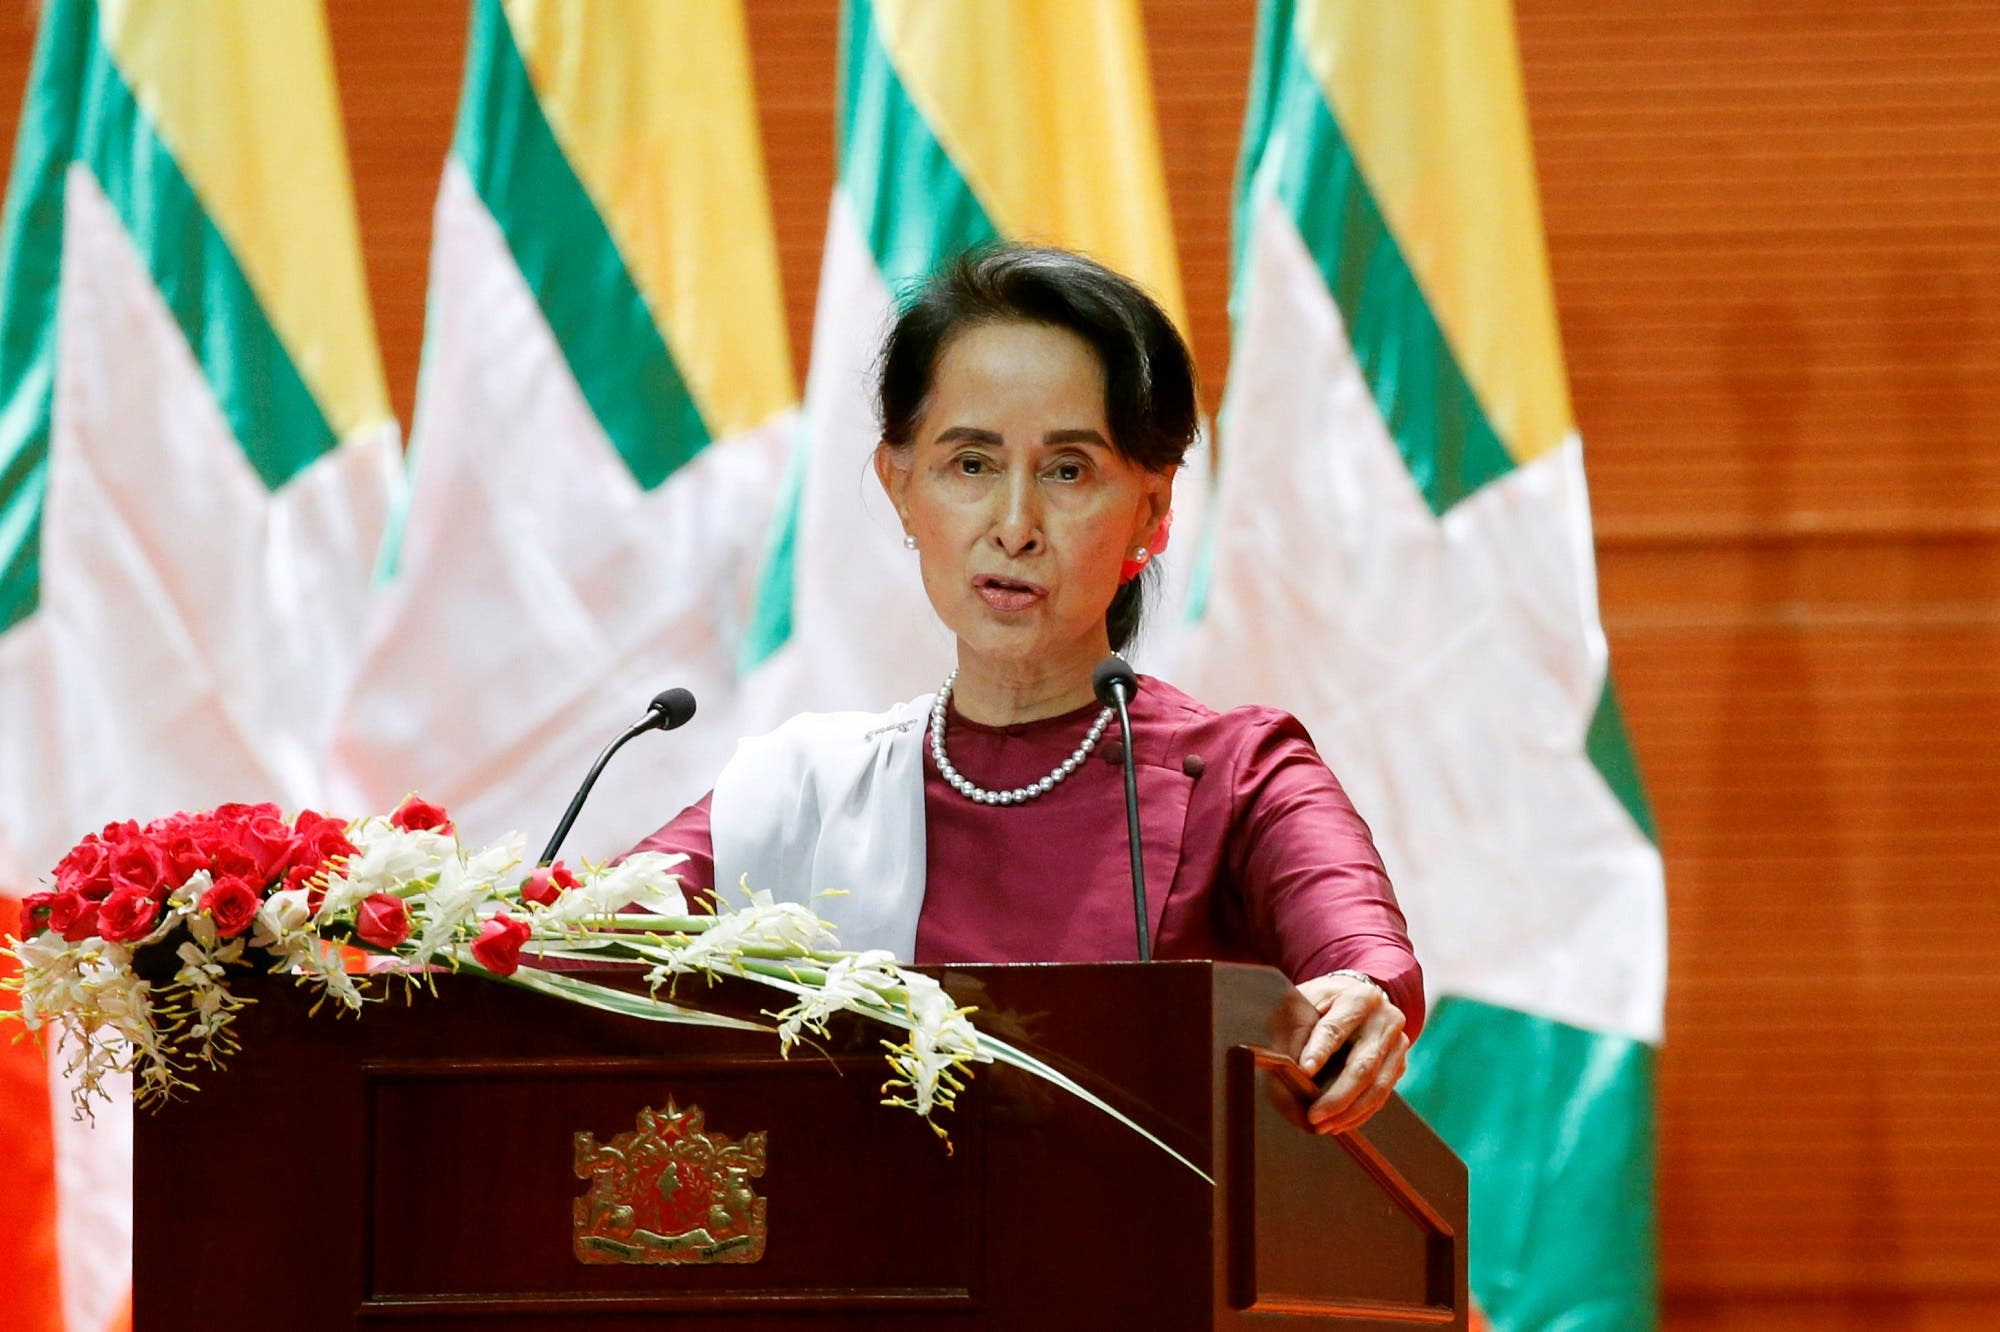 Aung San Suu Kyi delivers a speech to the nation over Rakhine and Rohingya situation, in Naypyitaw, Myanmar September 19, 2017. (Reuters)